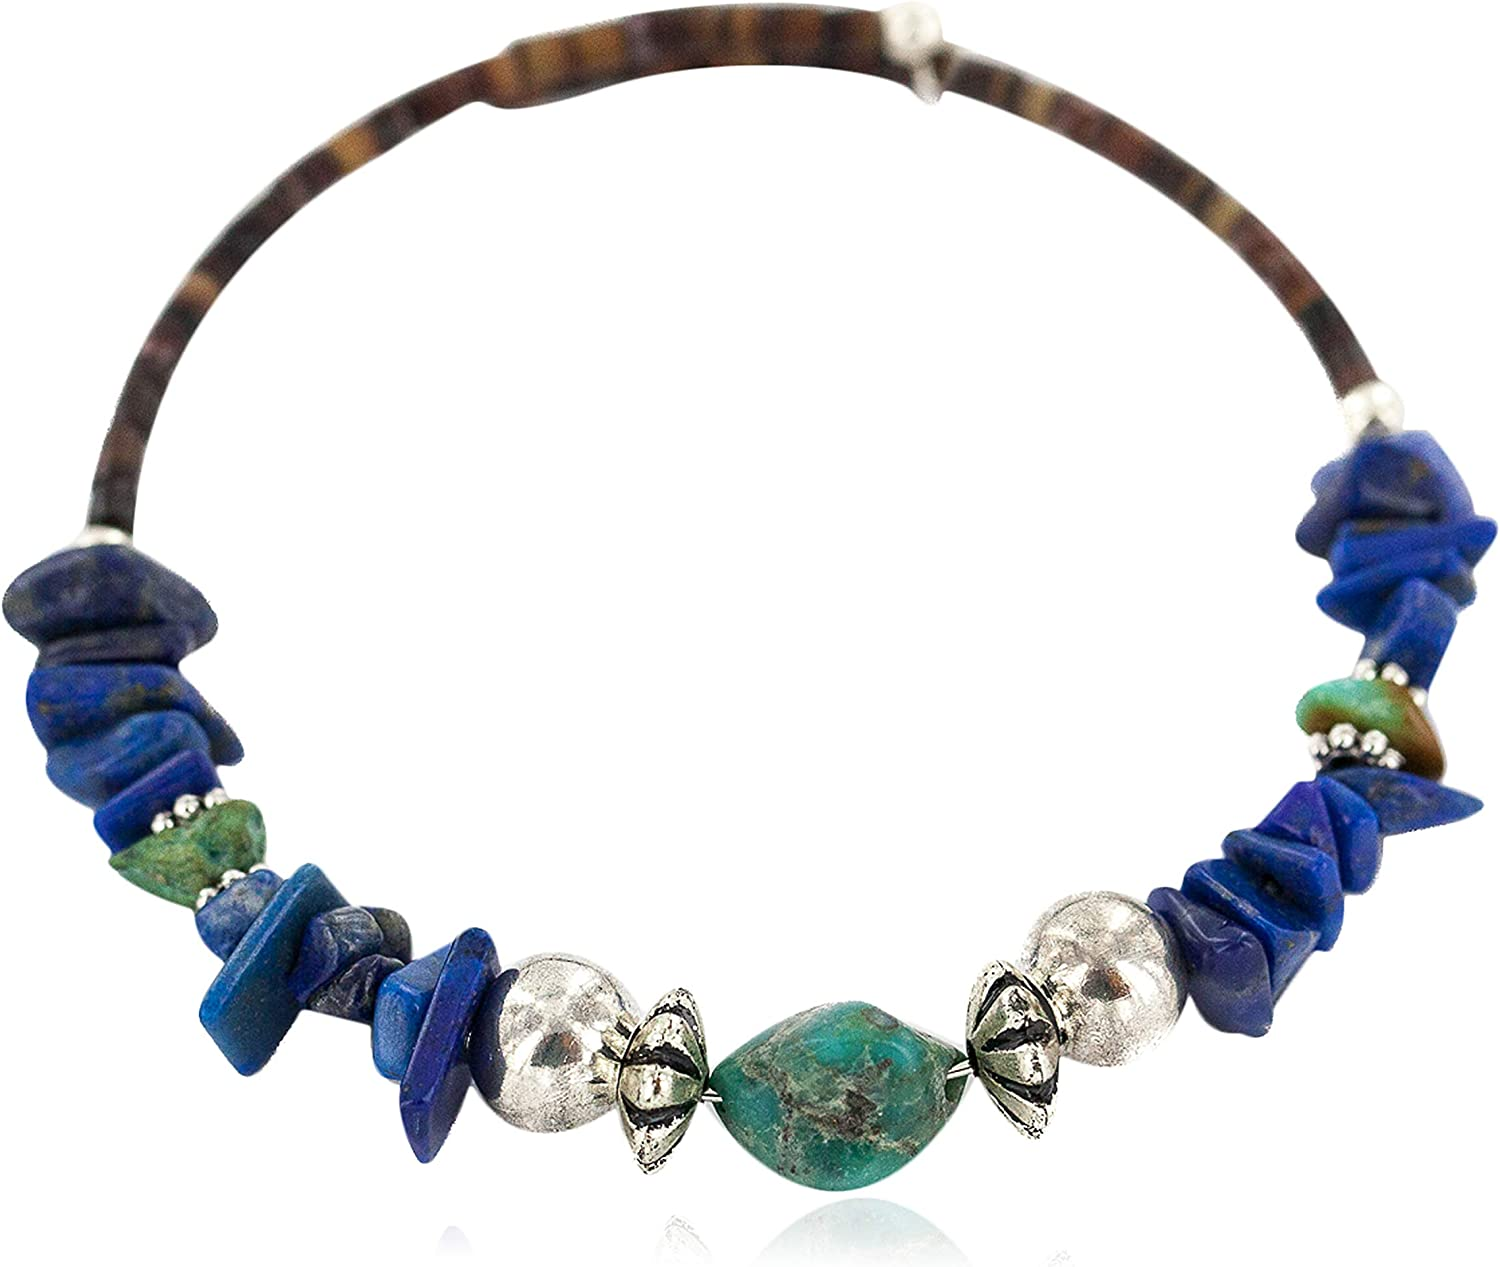 $80Tag Navajo Certified Turquoise Lapis Lazuli Native Adjustable Wrap Bracelet 1301-3 Made by Loma Siiva